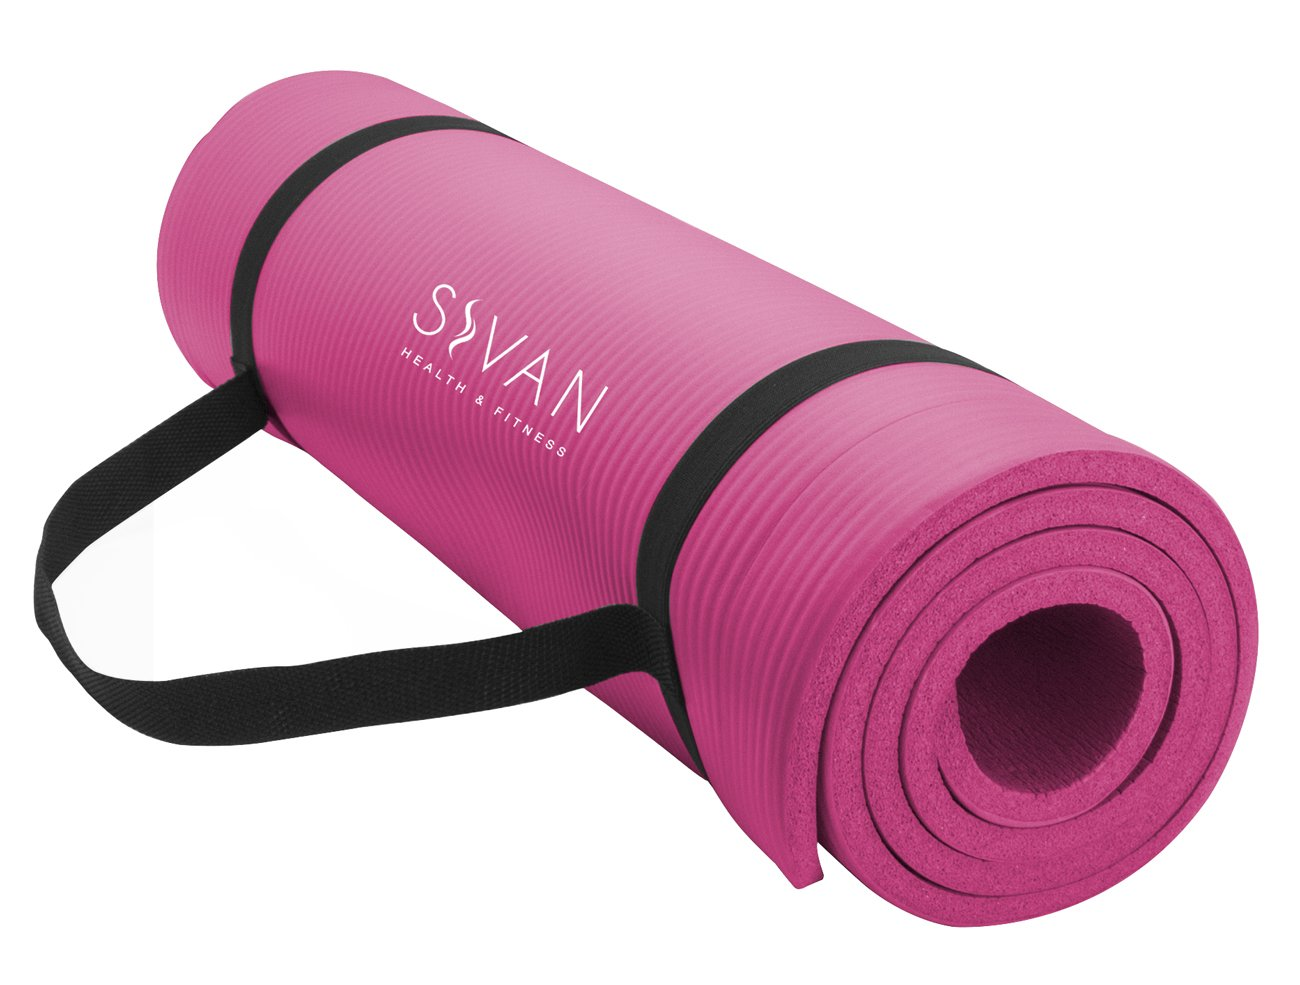 Sivan Health and Fitness 1/2-InchExtra Thick 71-Inch Long NBR Comfort Foam Yoga Mat for Exercise, Yoga, and Pilates (Pink)